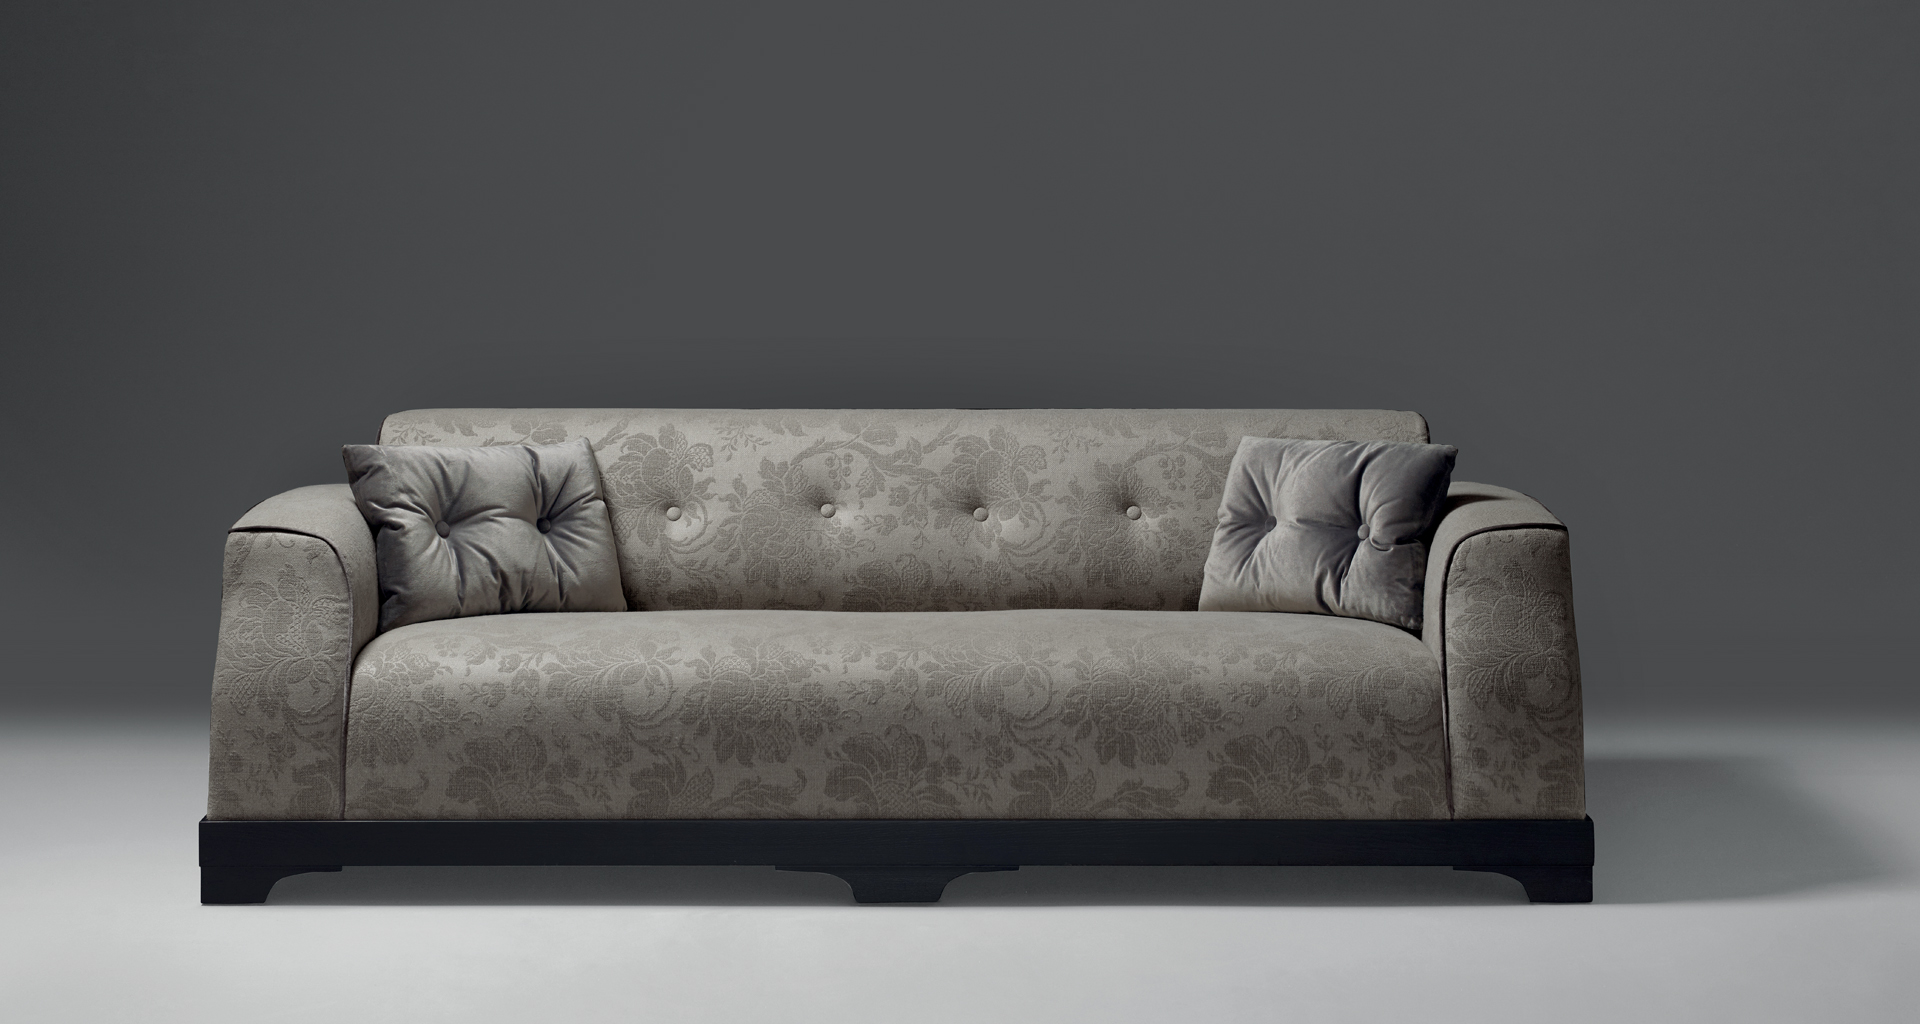 Mogador is a wooden sofa covered in fabric or leather with capitonnè backrest and cushions, from Promemoria's catalogue | Promemoria